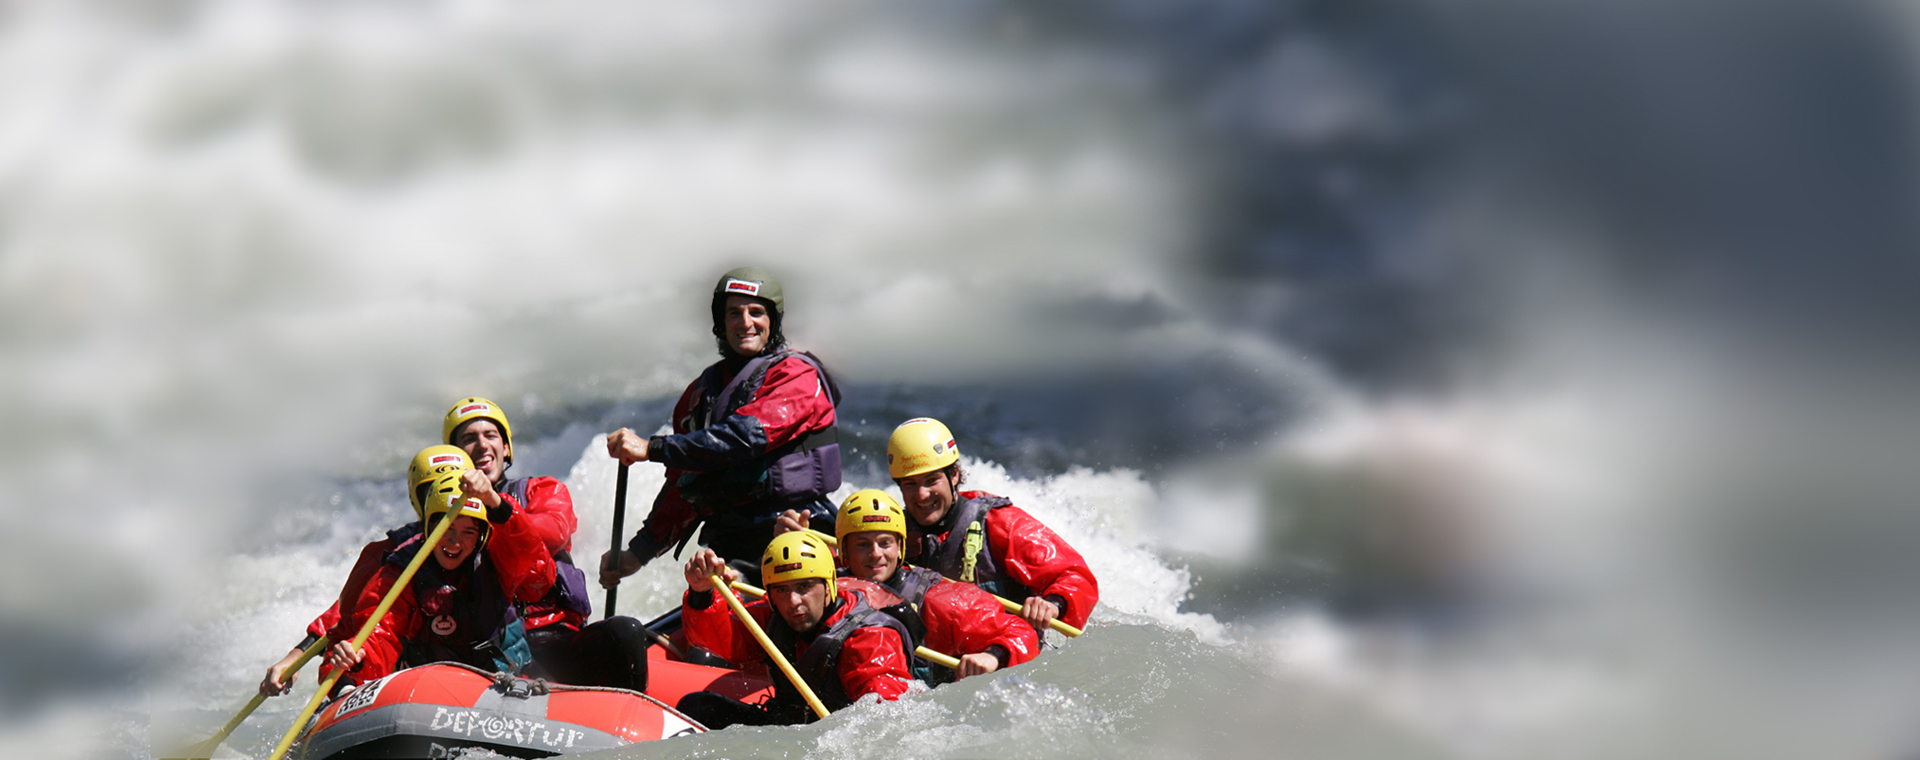 ¡Ven a hacer Rafting!